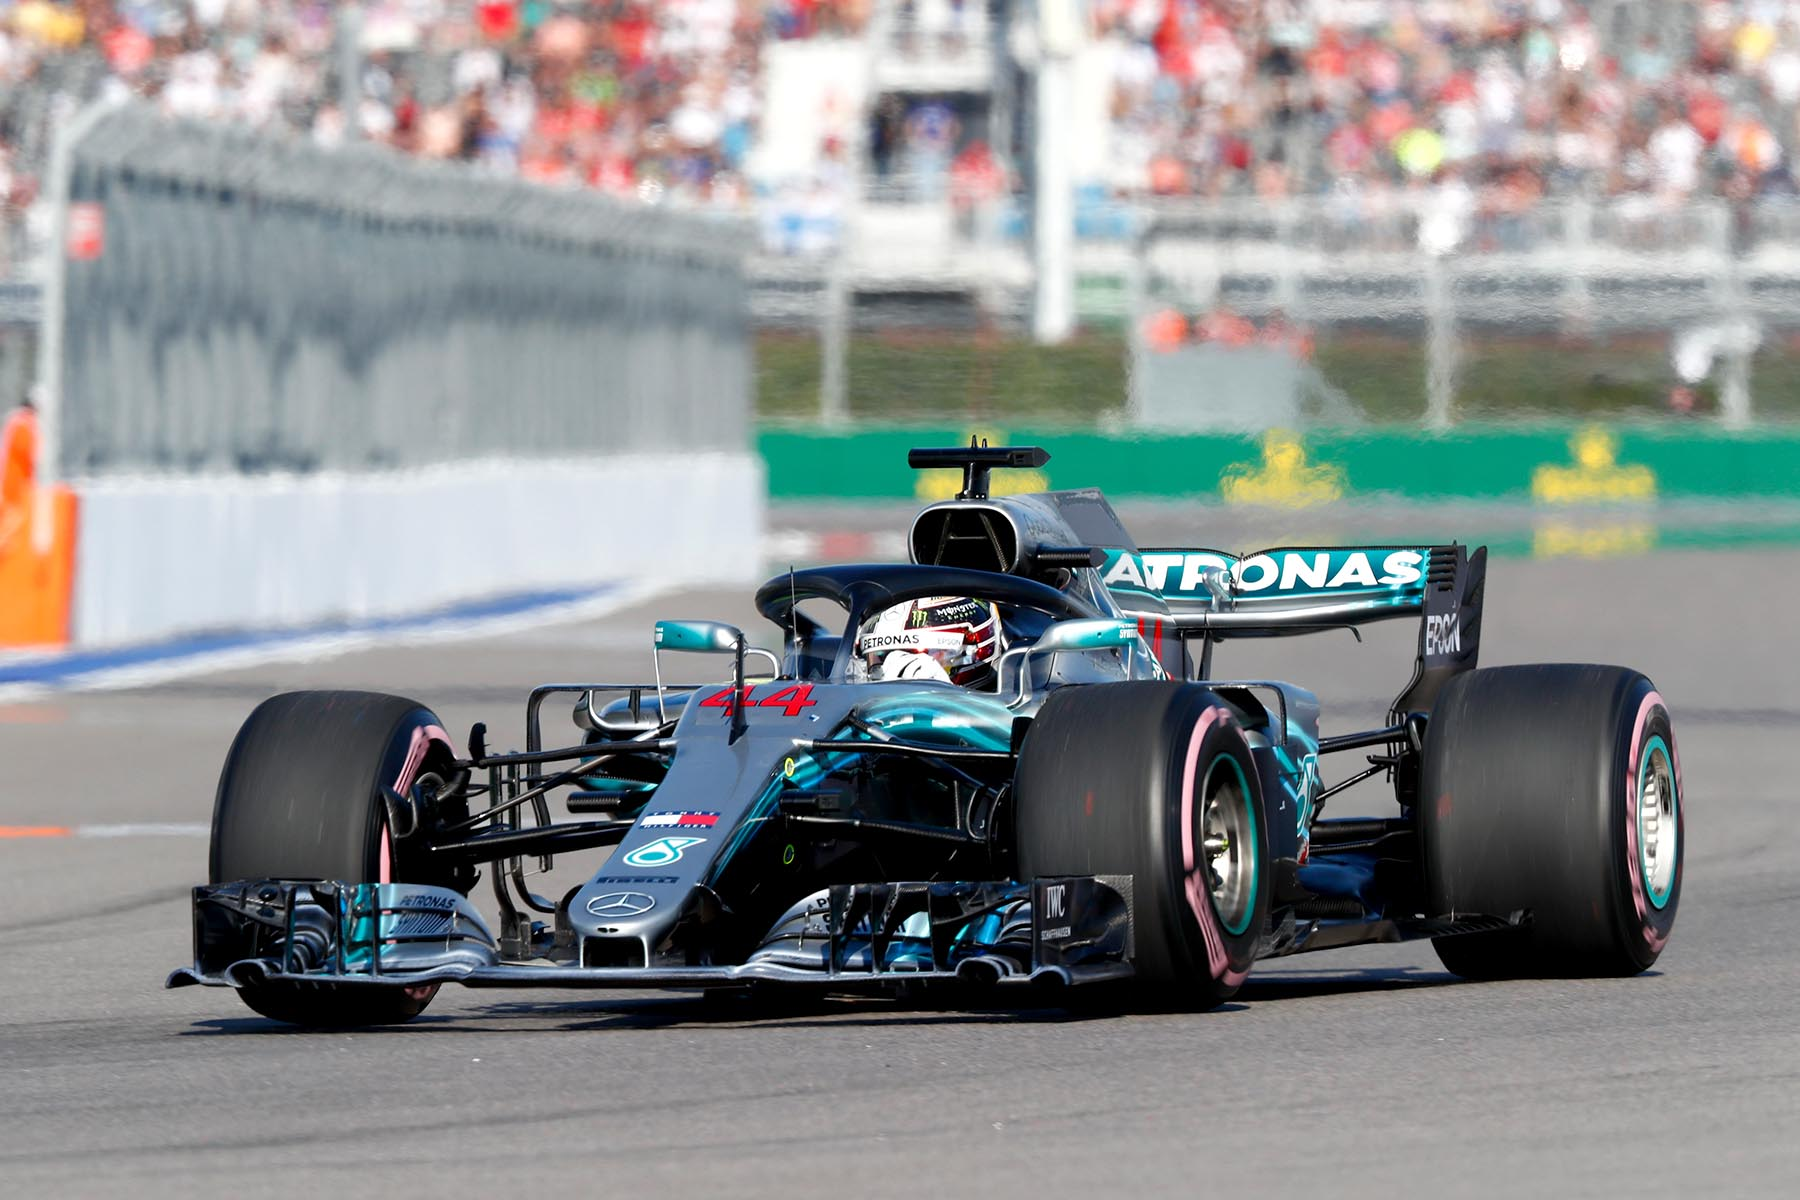 Lewis Hamilton on track at the 2018 Russian Grand Prix.